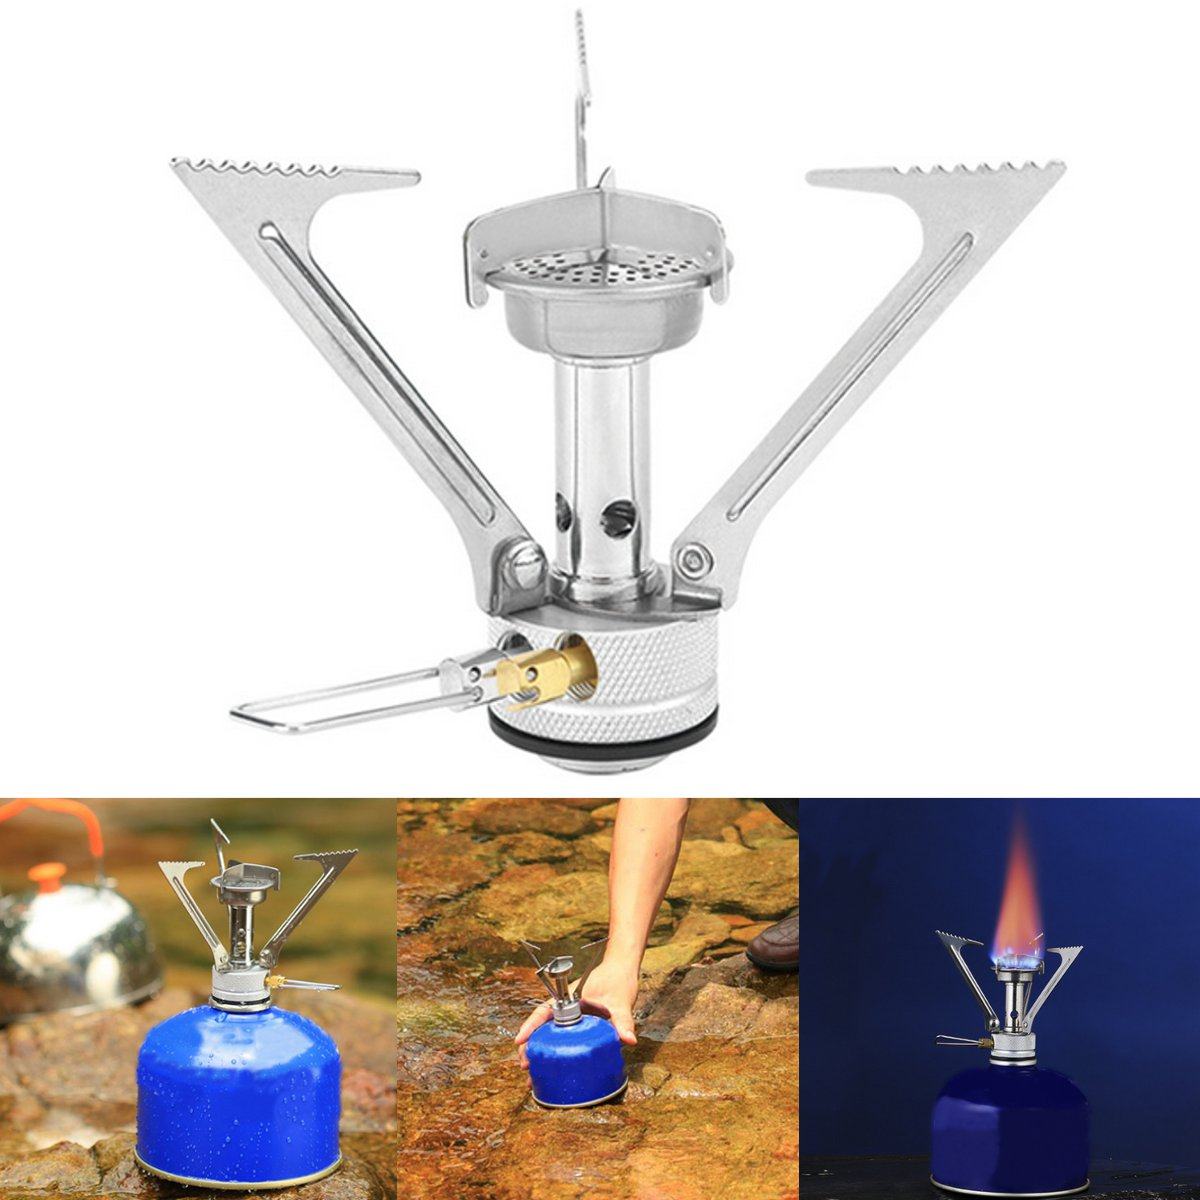 IPRee™ Portable High Altitude Gas Cooking Stove Camping Travel Mini Furnace Utensil Cookware